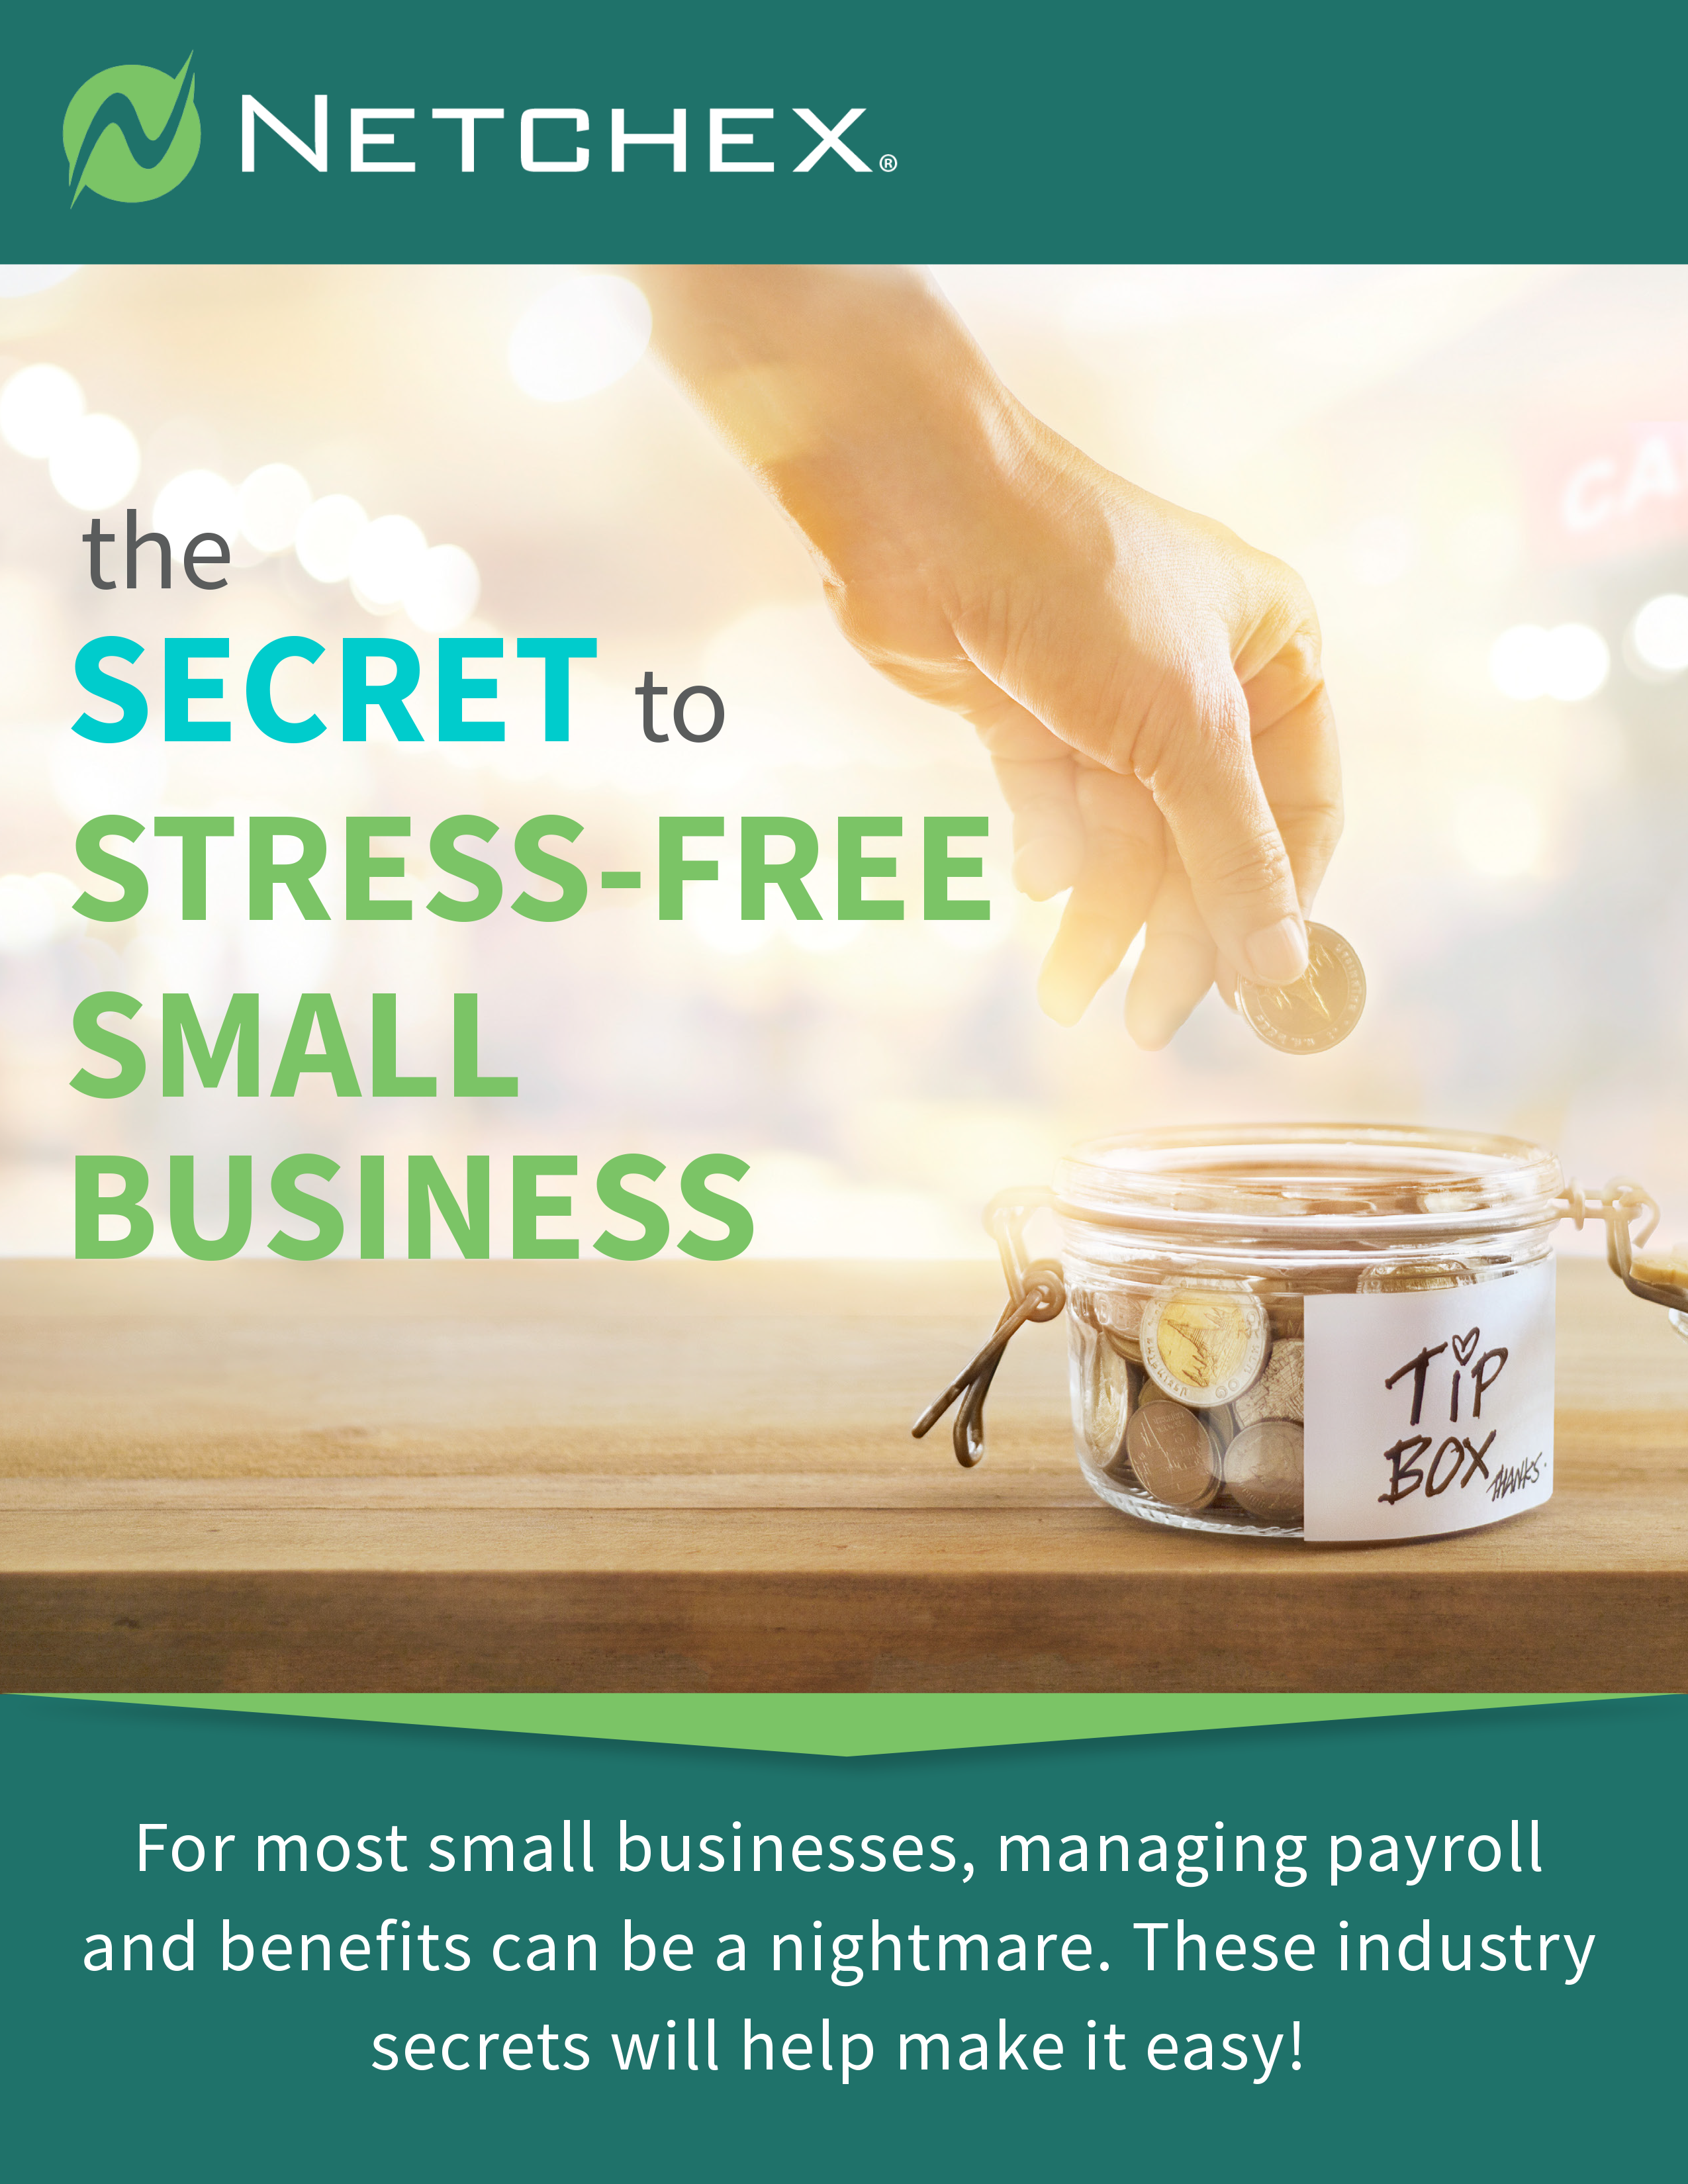 secrets to small business-1 cover